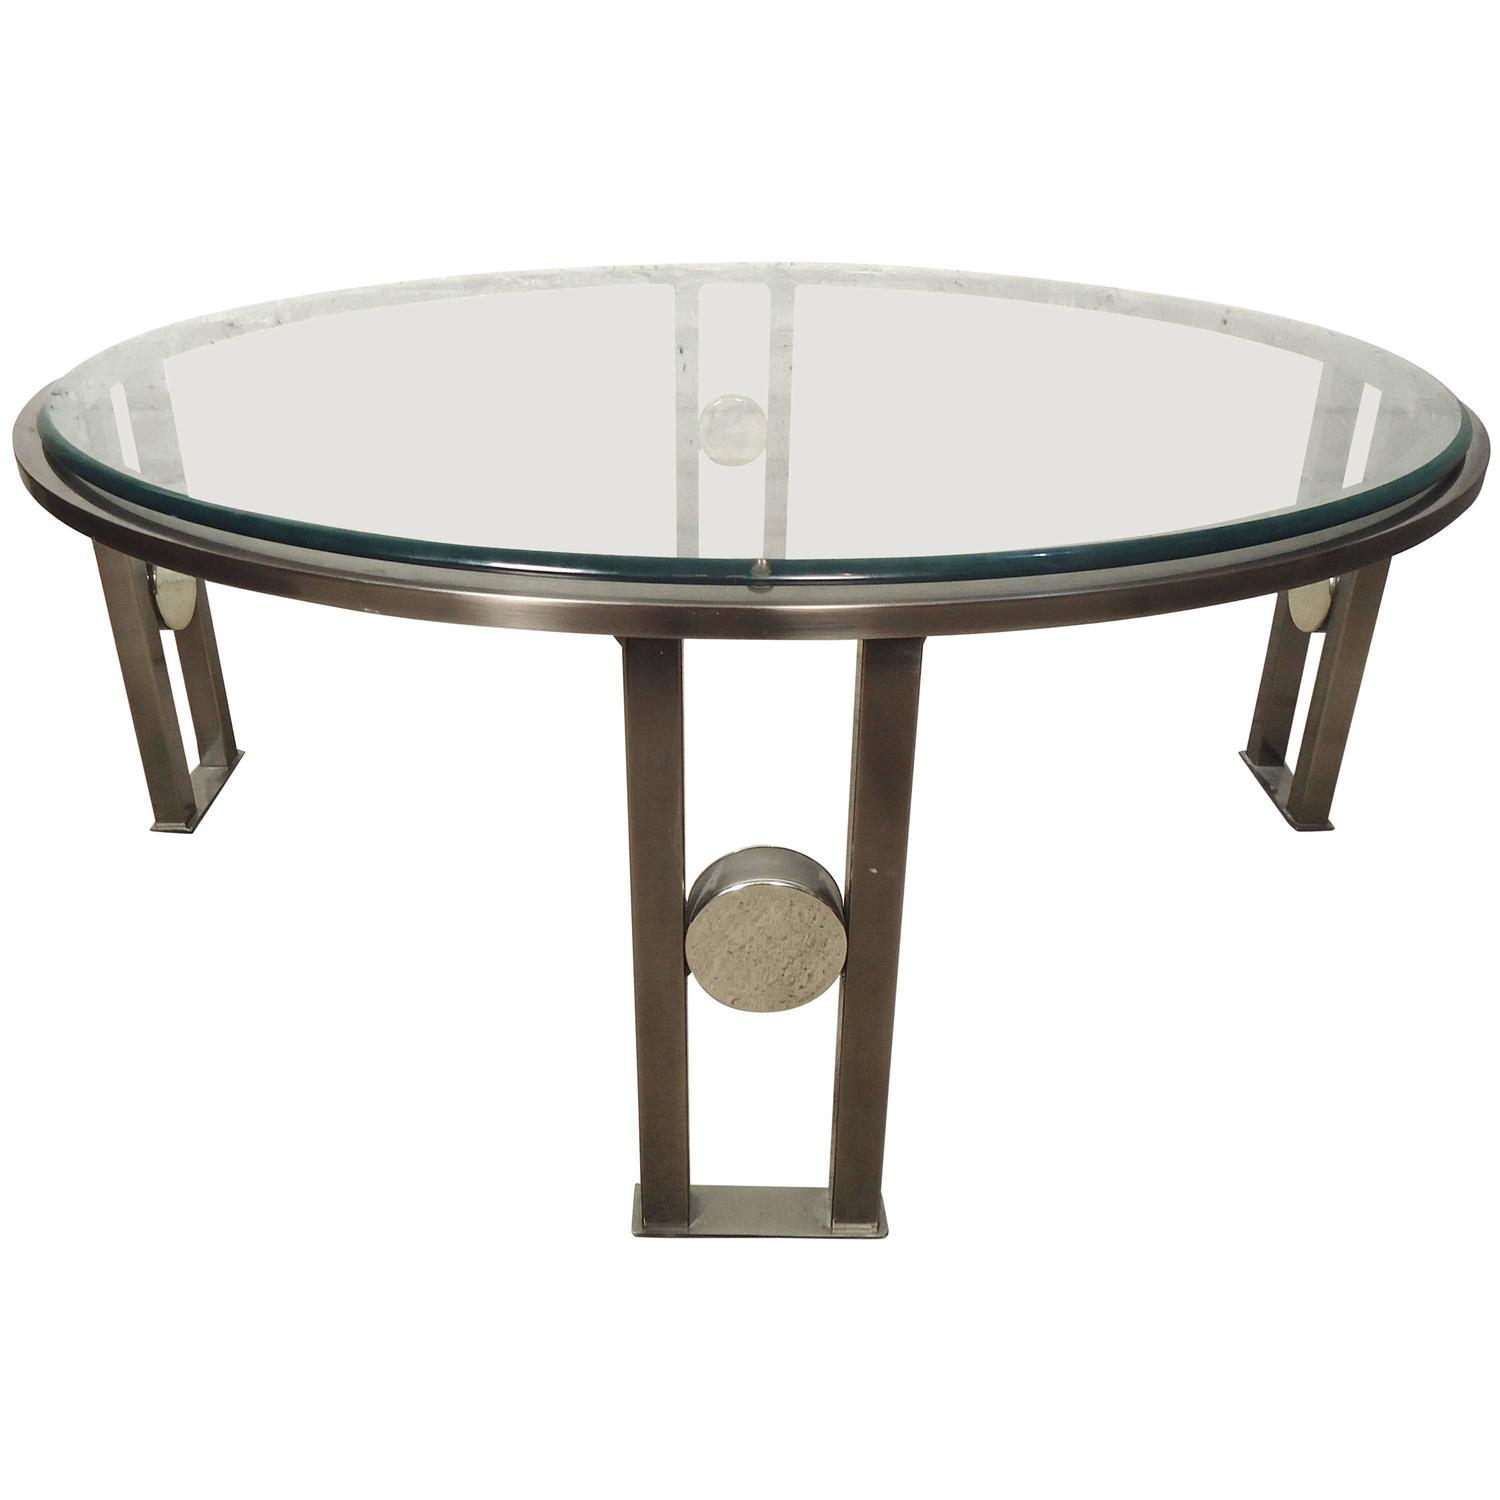 Round Glass Top Coffee Table At 1stdibs